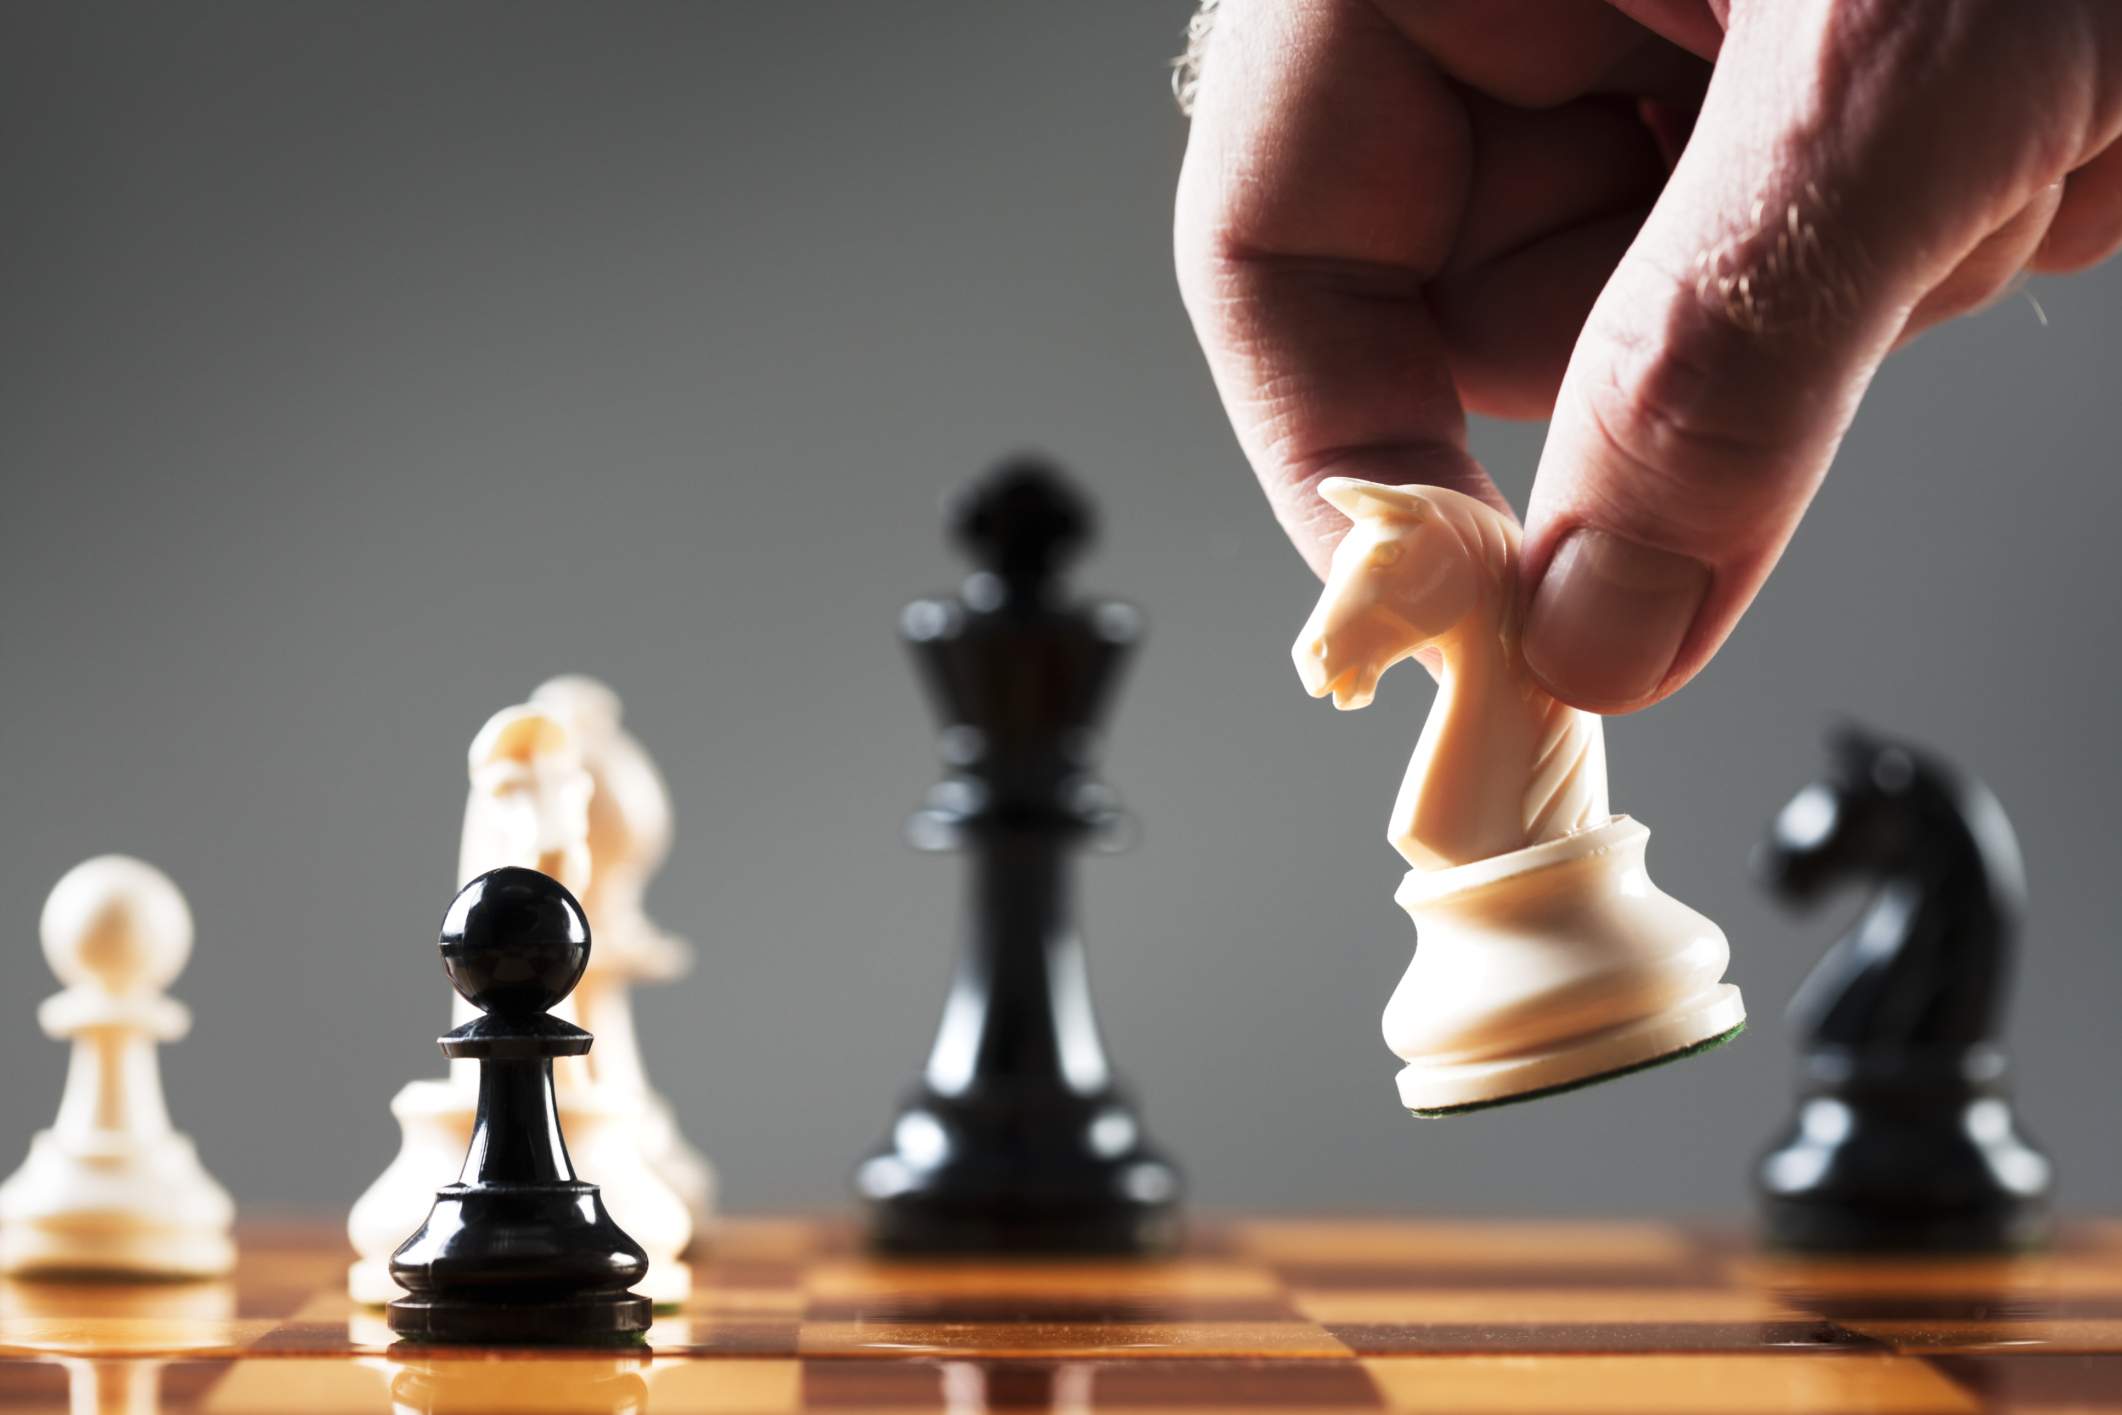 chess-game-wallpapers.jpg